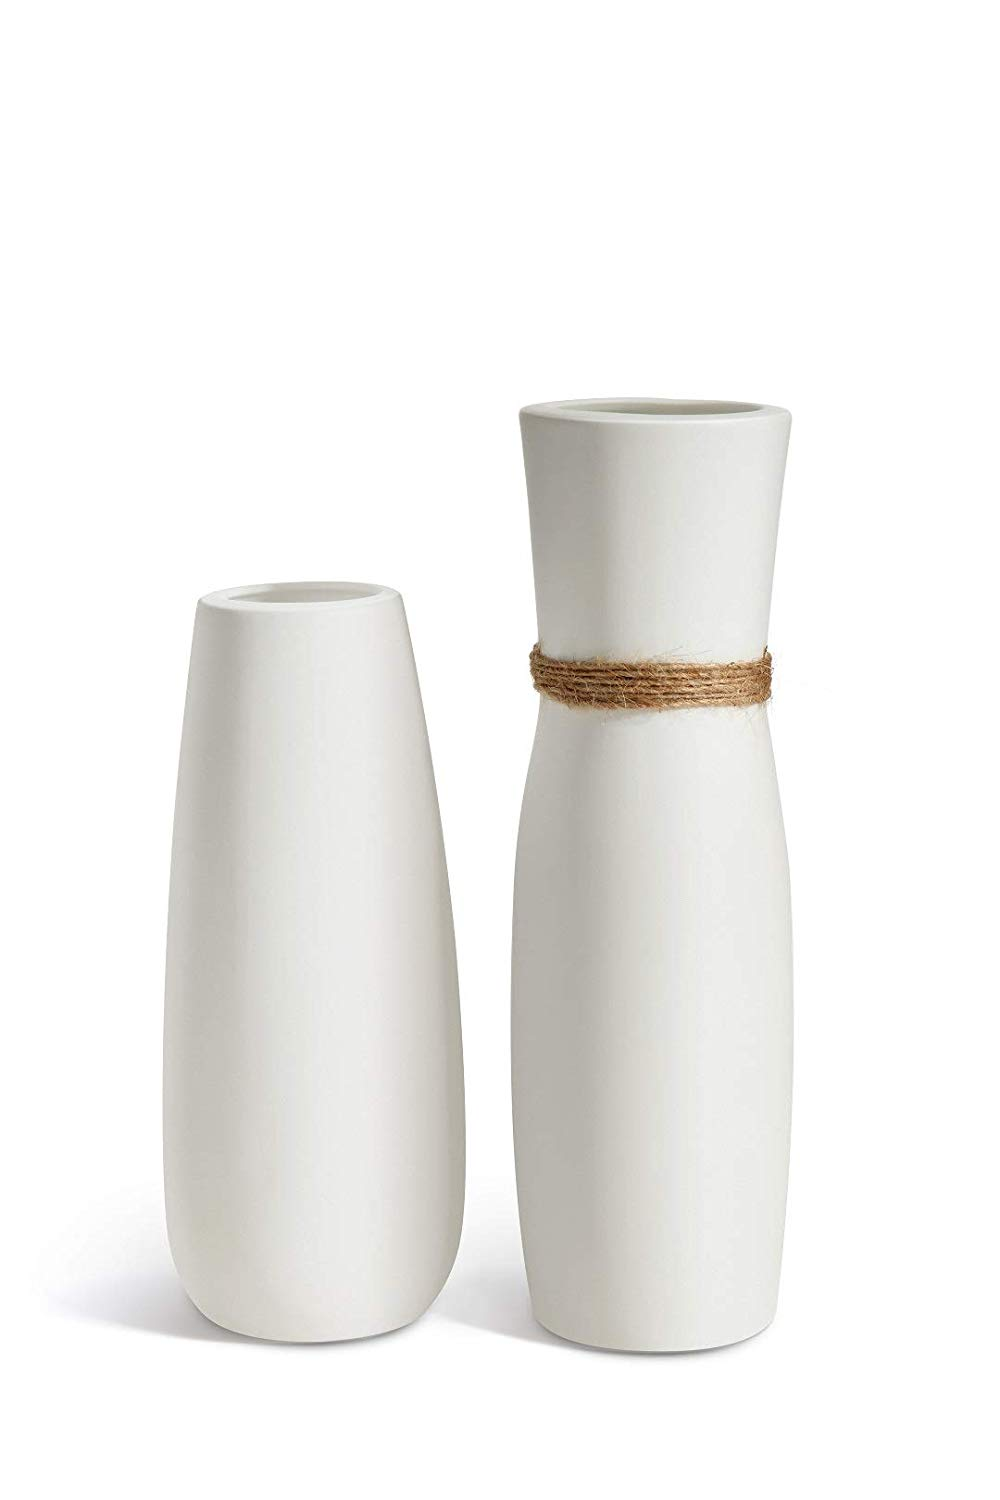 OPPS White Ceramic Vases